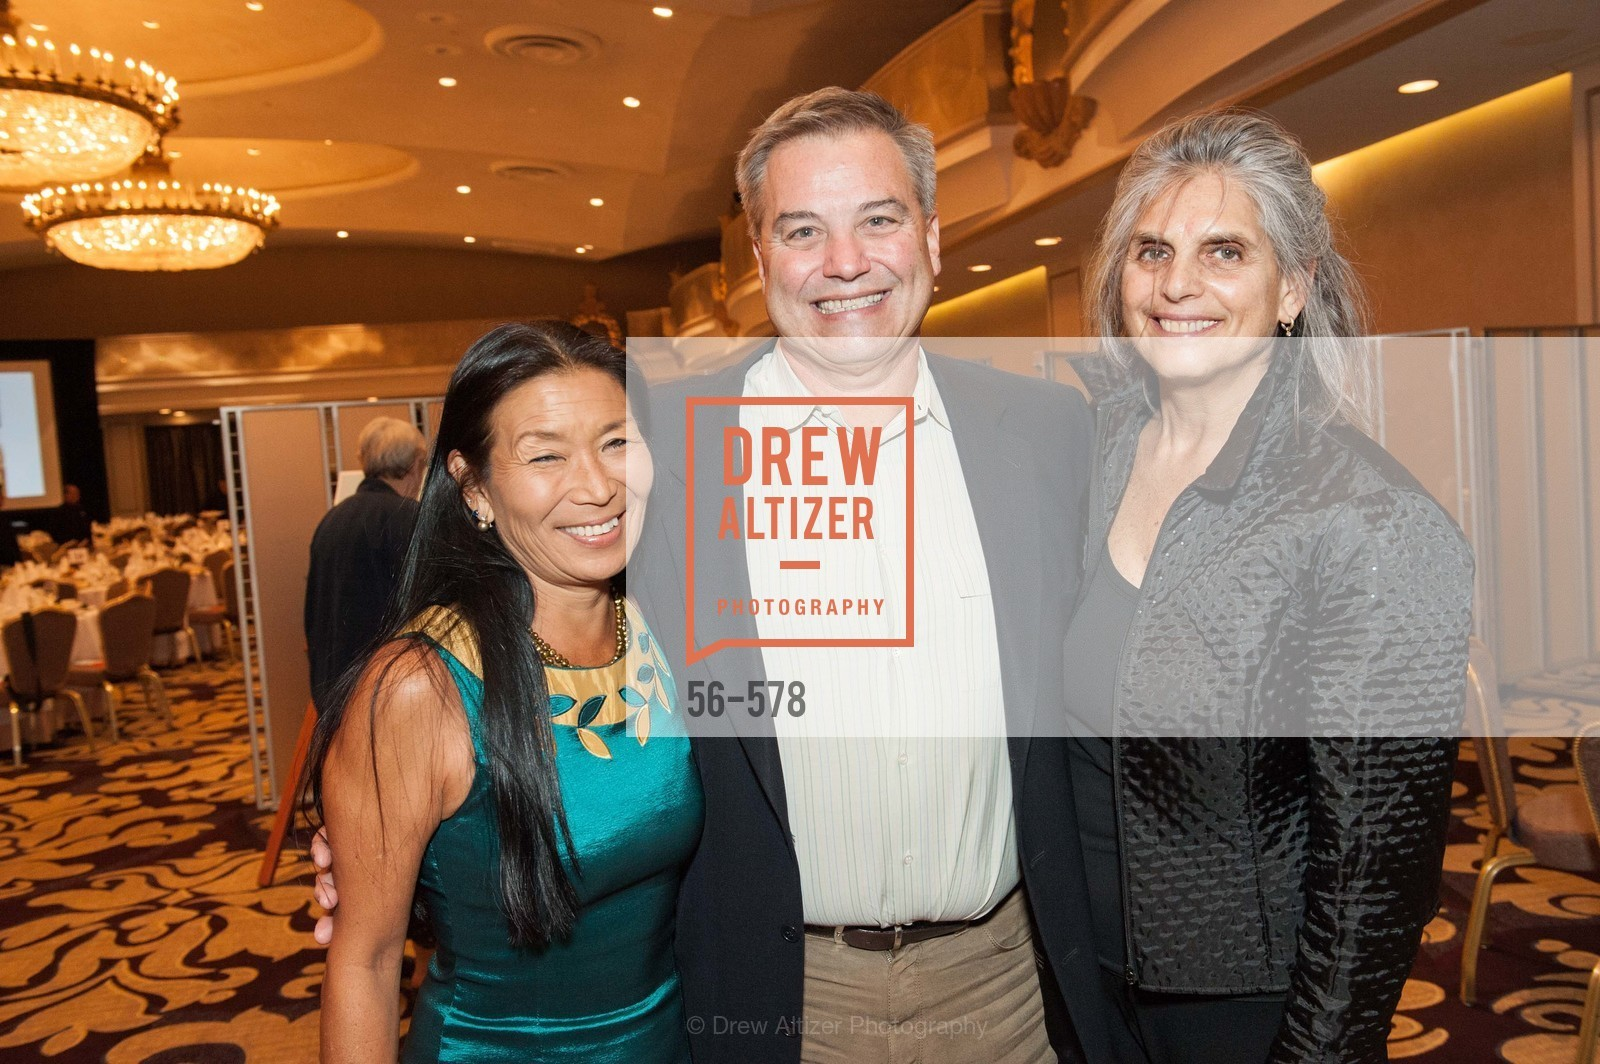 Linda Wallgren, Steven Gorski, Roberta Goodman, HOMELESS PRENATAL Annual Luncheon 2014, US, October 1st, 2014,Drew Altizer, Drew Altizer Photography, full-service agency, private events, San Francisco photographer, photographer california